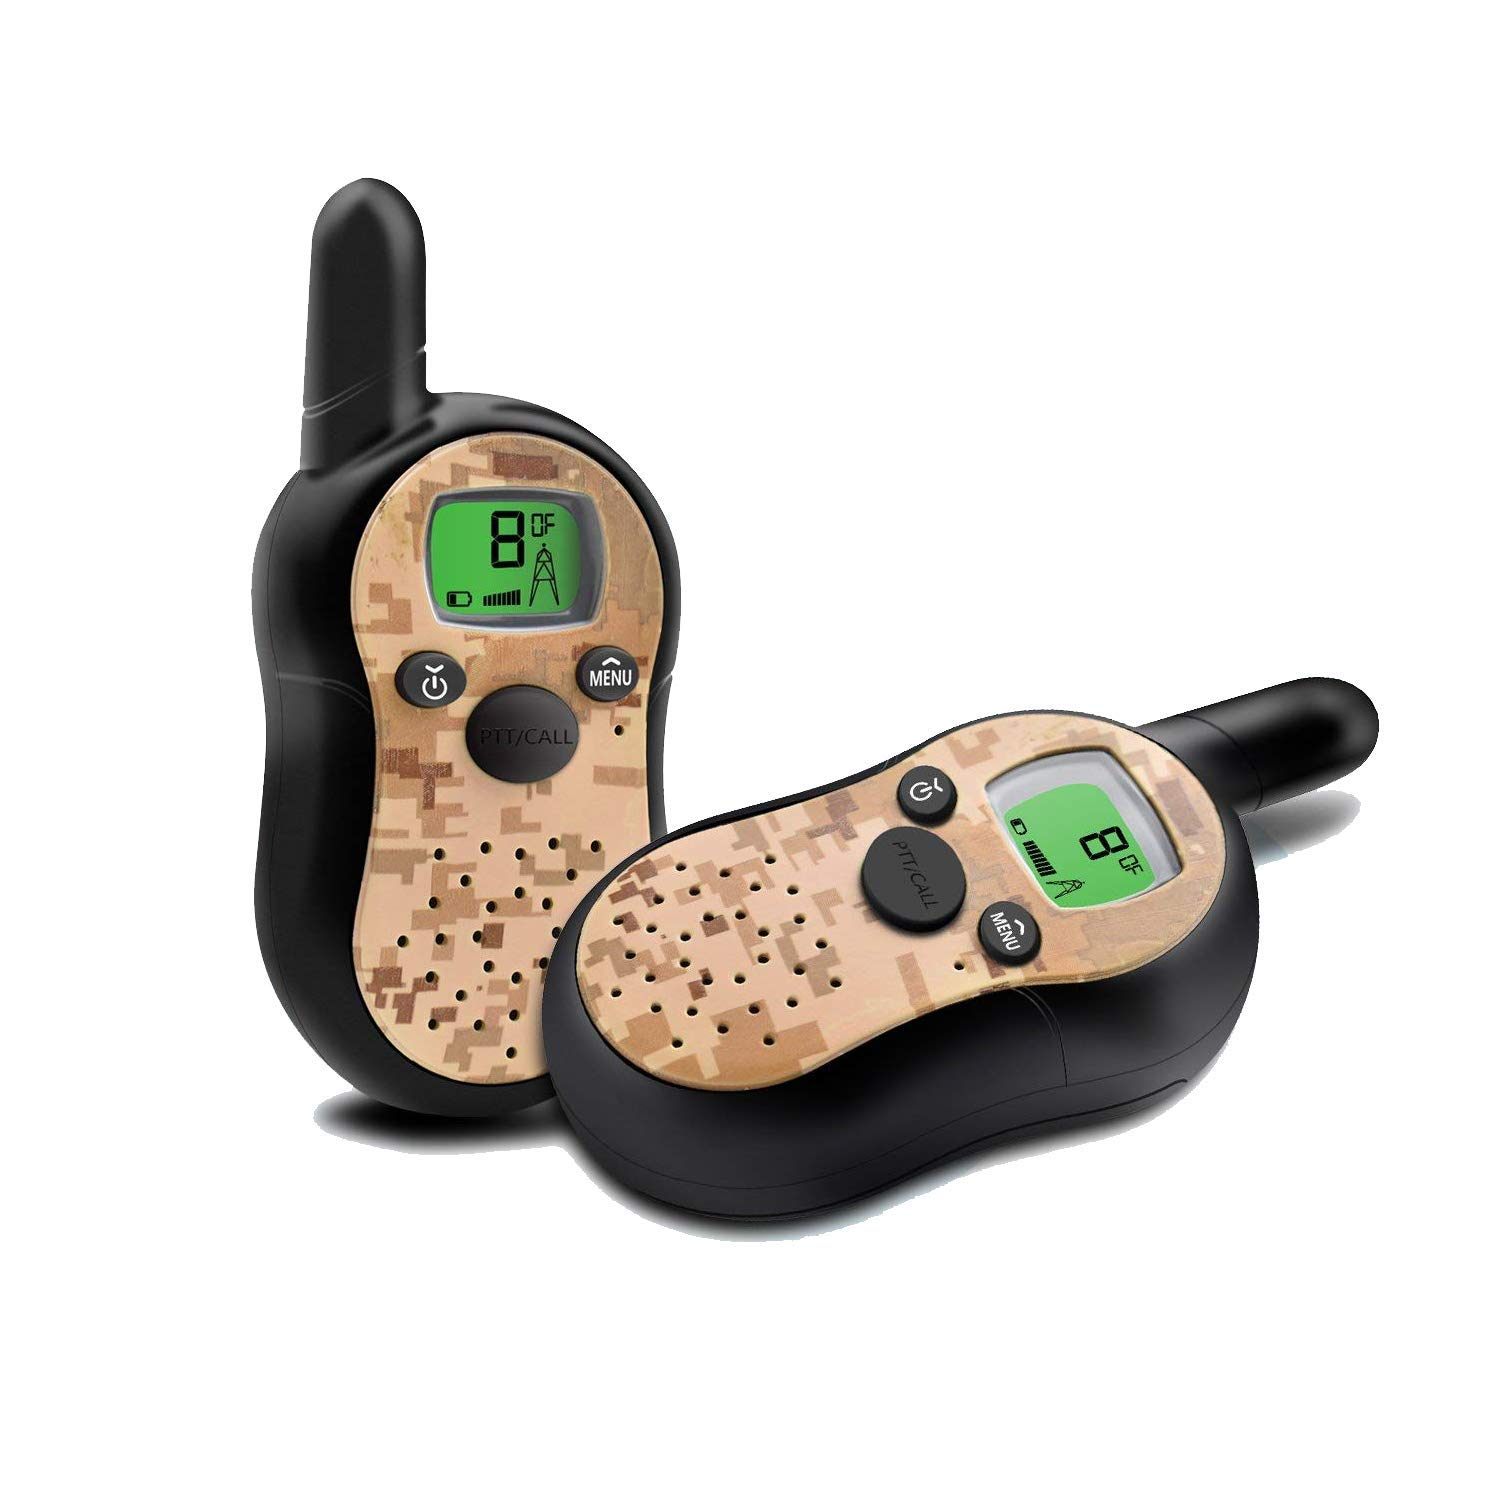 TiMi Tree Walkie Talkies for Kids, Top Toys for 3 4 5 6 Year Old Boys, Gifts for Kids Age 4 5 6 7 Voice Activated Long Range Volume Control, Camouflage by TiMi Tree (Image #7)